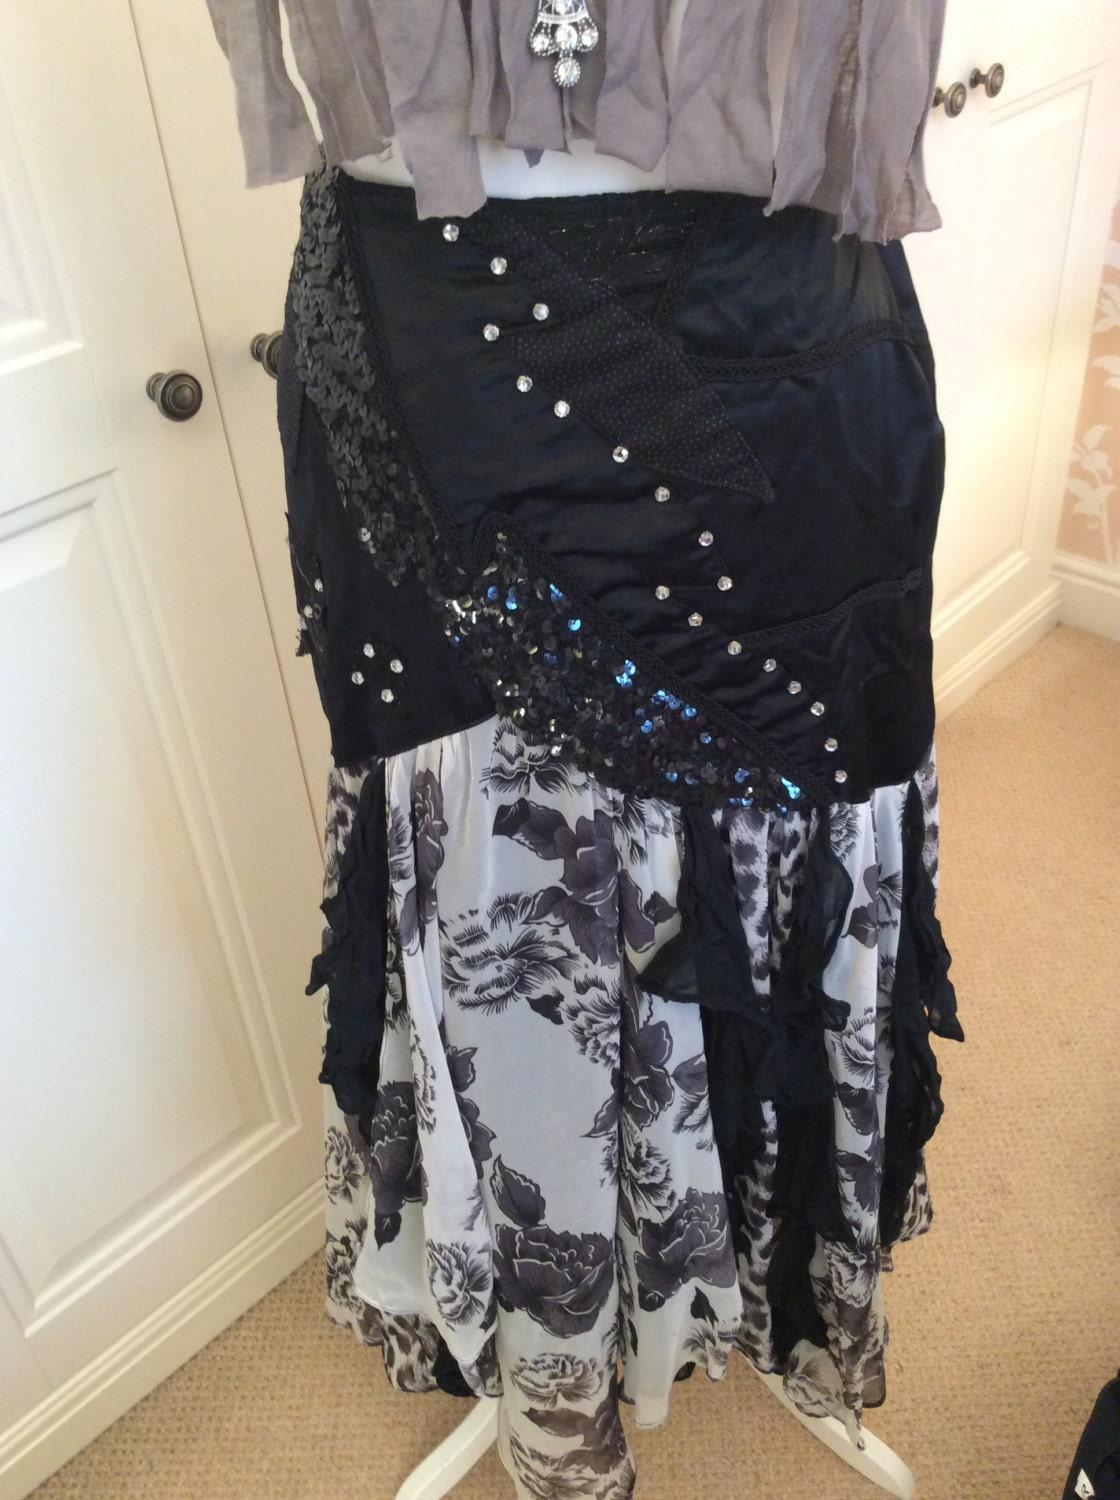 Vintage long skirt with frills black and white animal printsequinsrhinestones one size